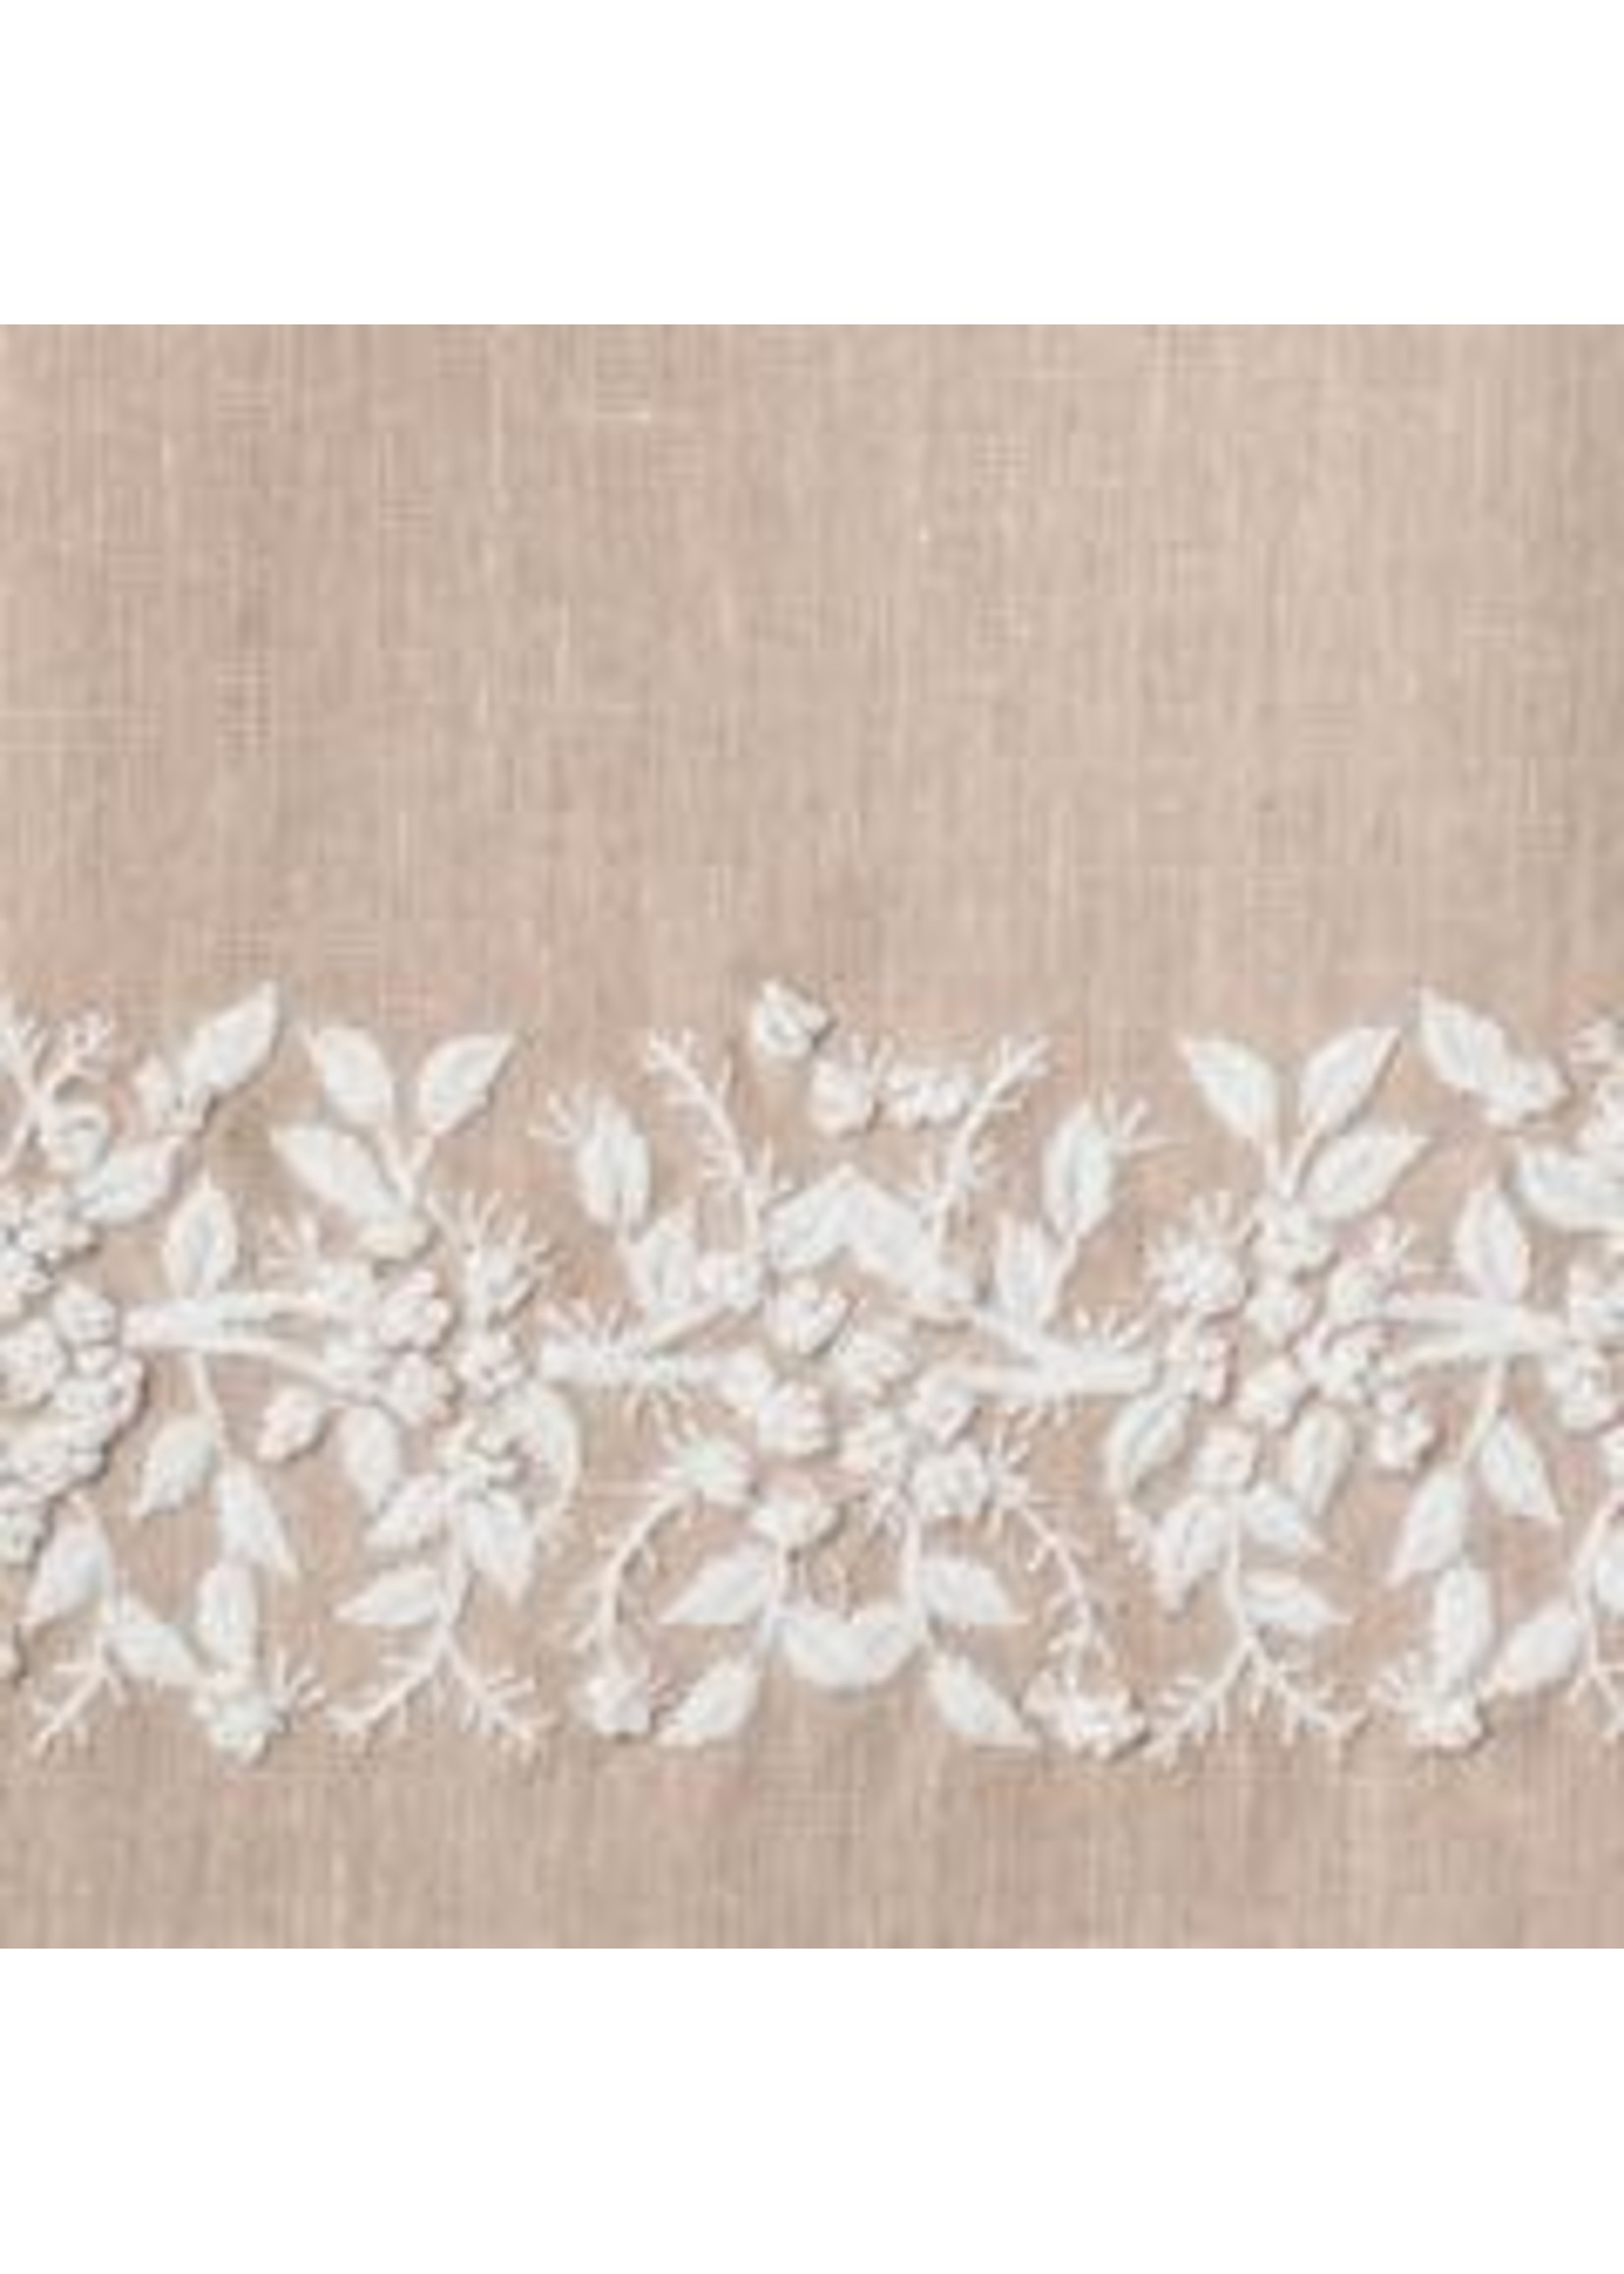 Henry Handwork Tissue Box Cover - Jardin Taupe with White